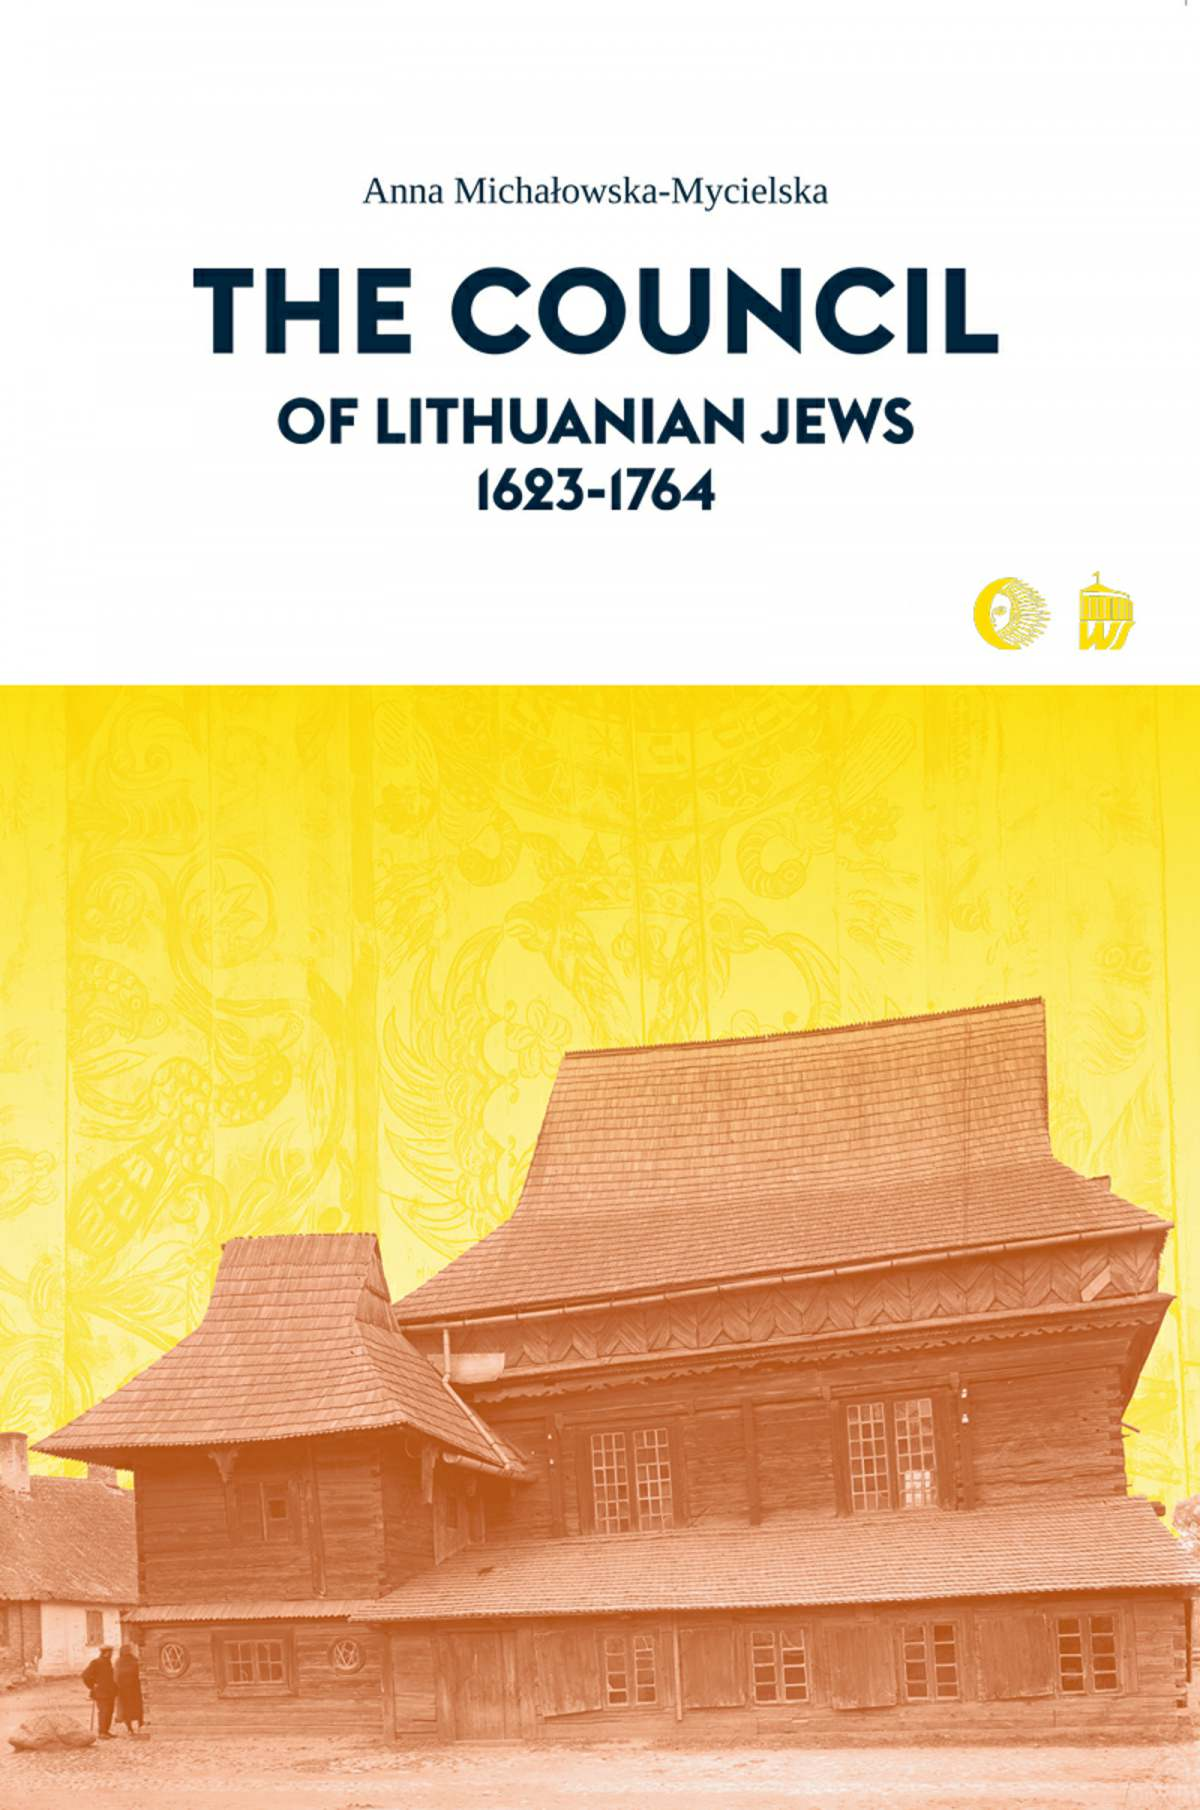 The Council of Lithuanian Jews 1623-1764 - Ebook (Książka na Kindle) do pobrania w formacie MOBI